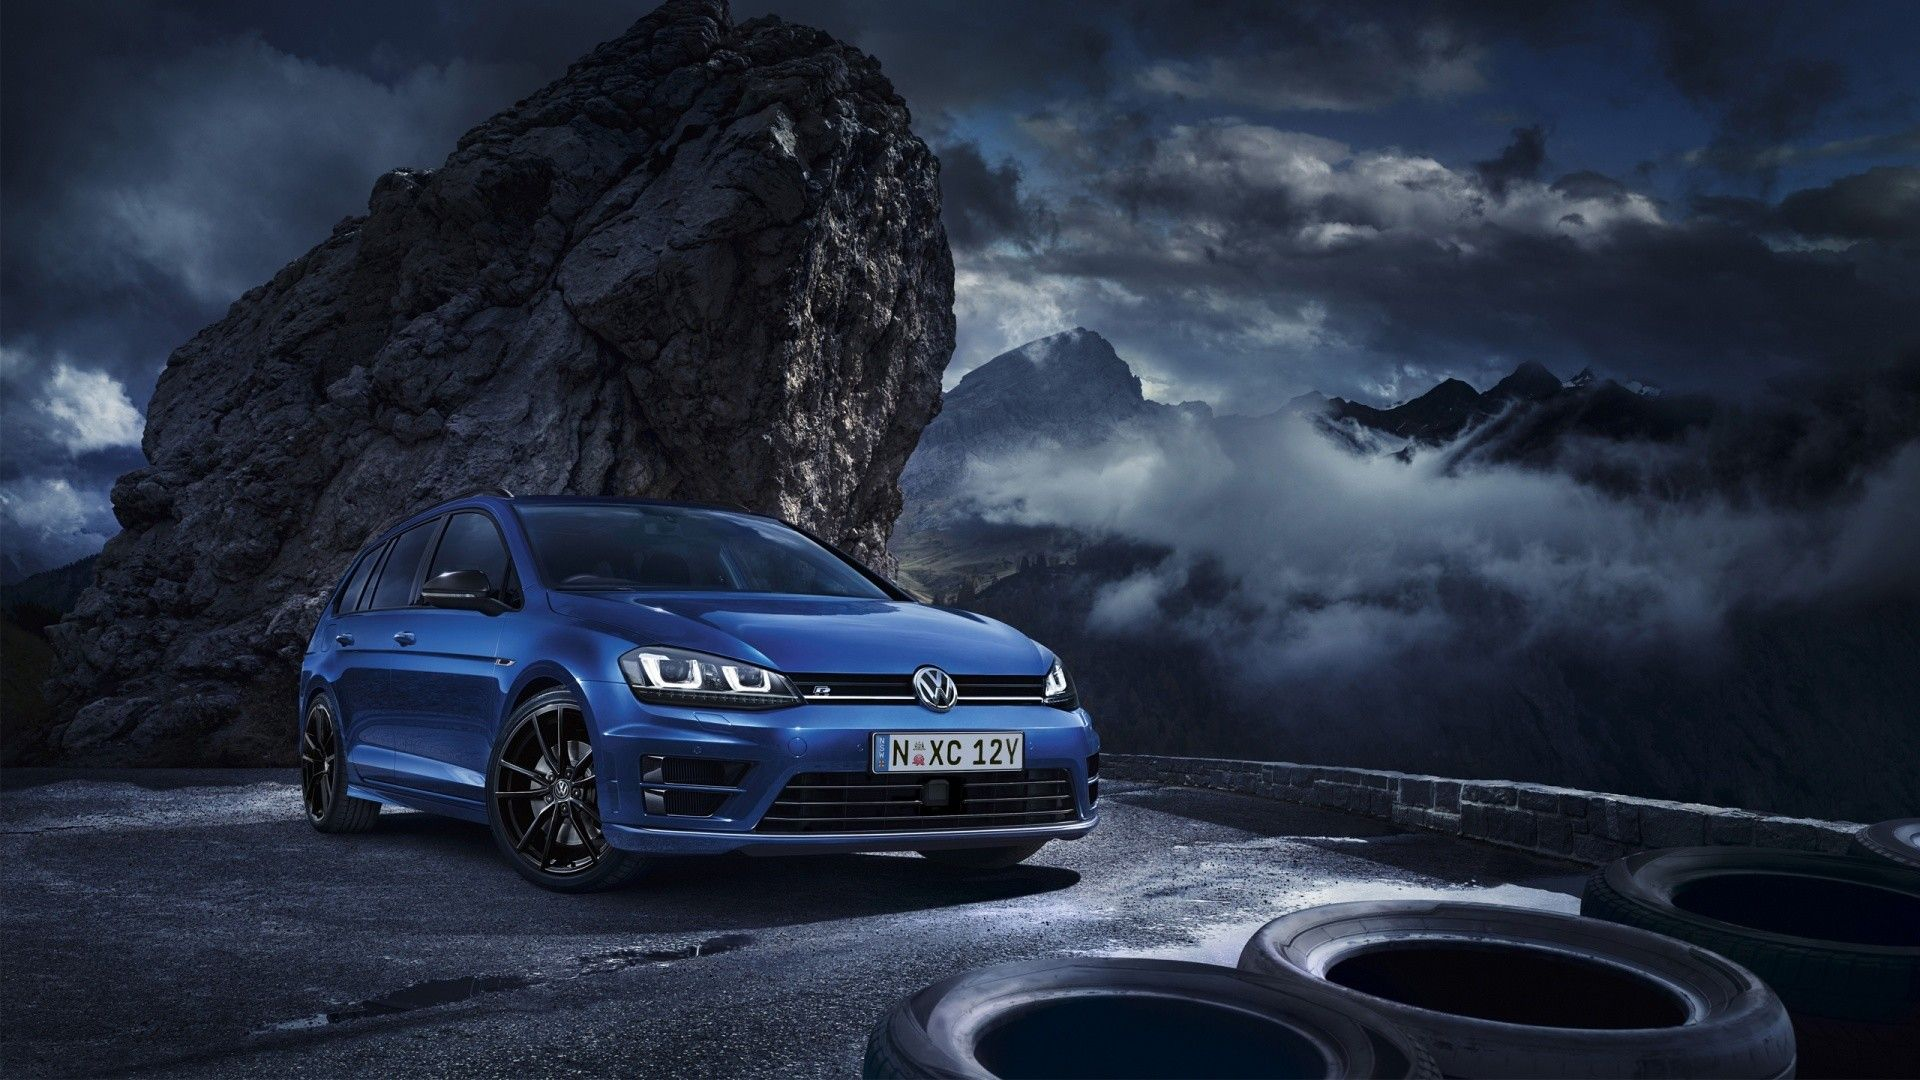 Vw Golf Wallpapers Top Free Vw Golf Backgrounds Wallpaperaccess